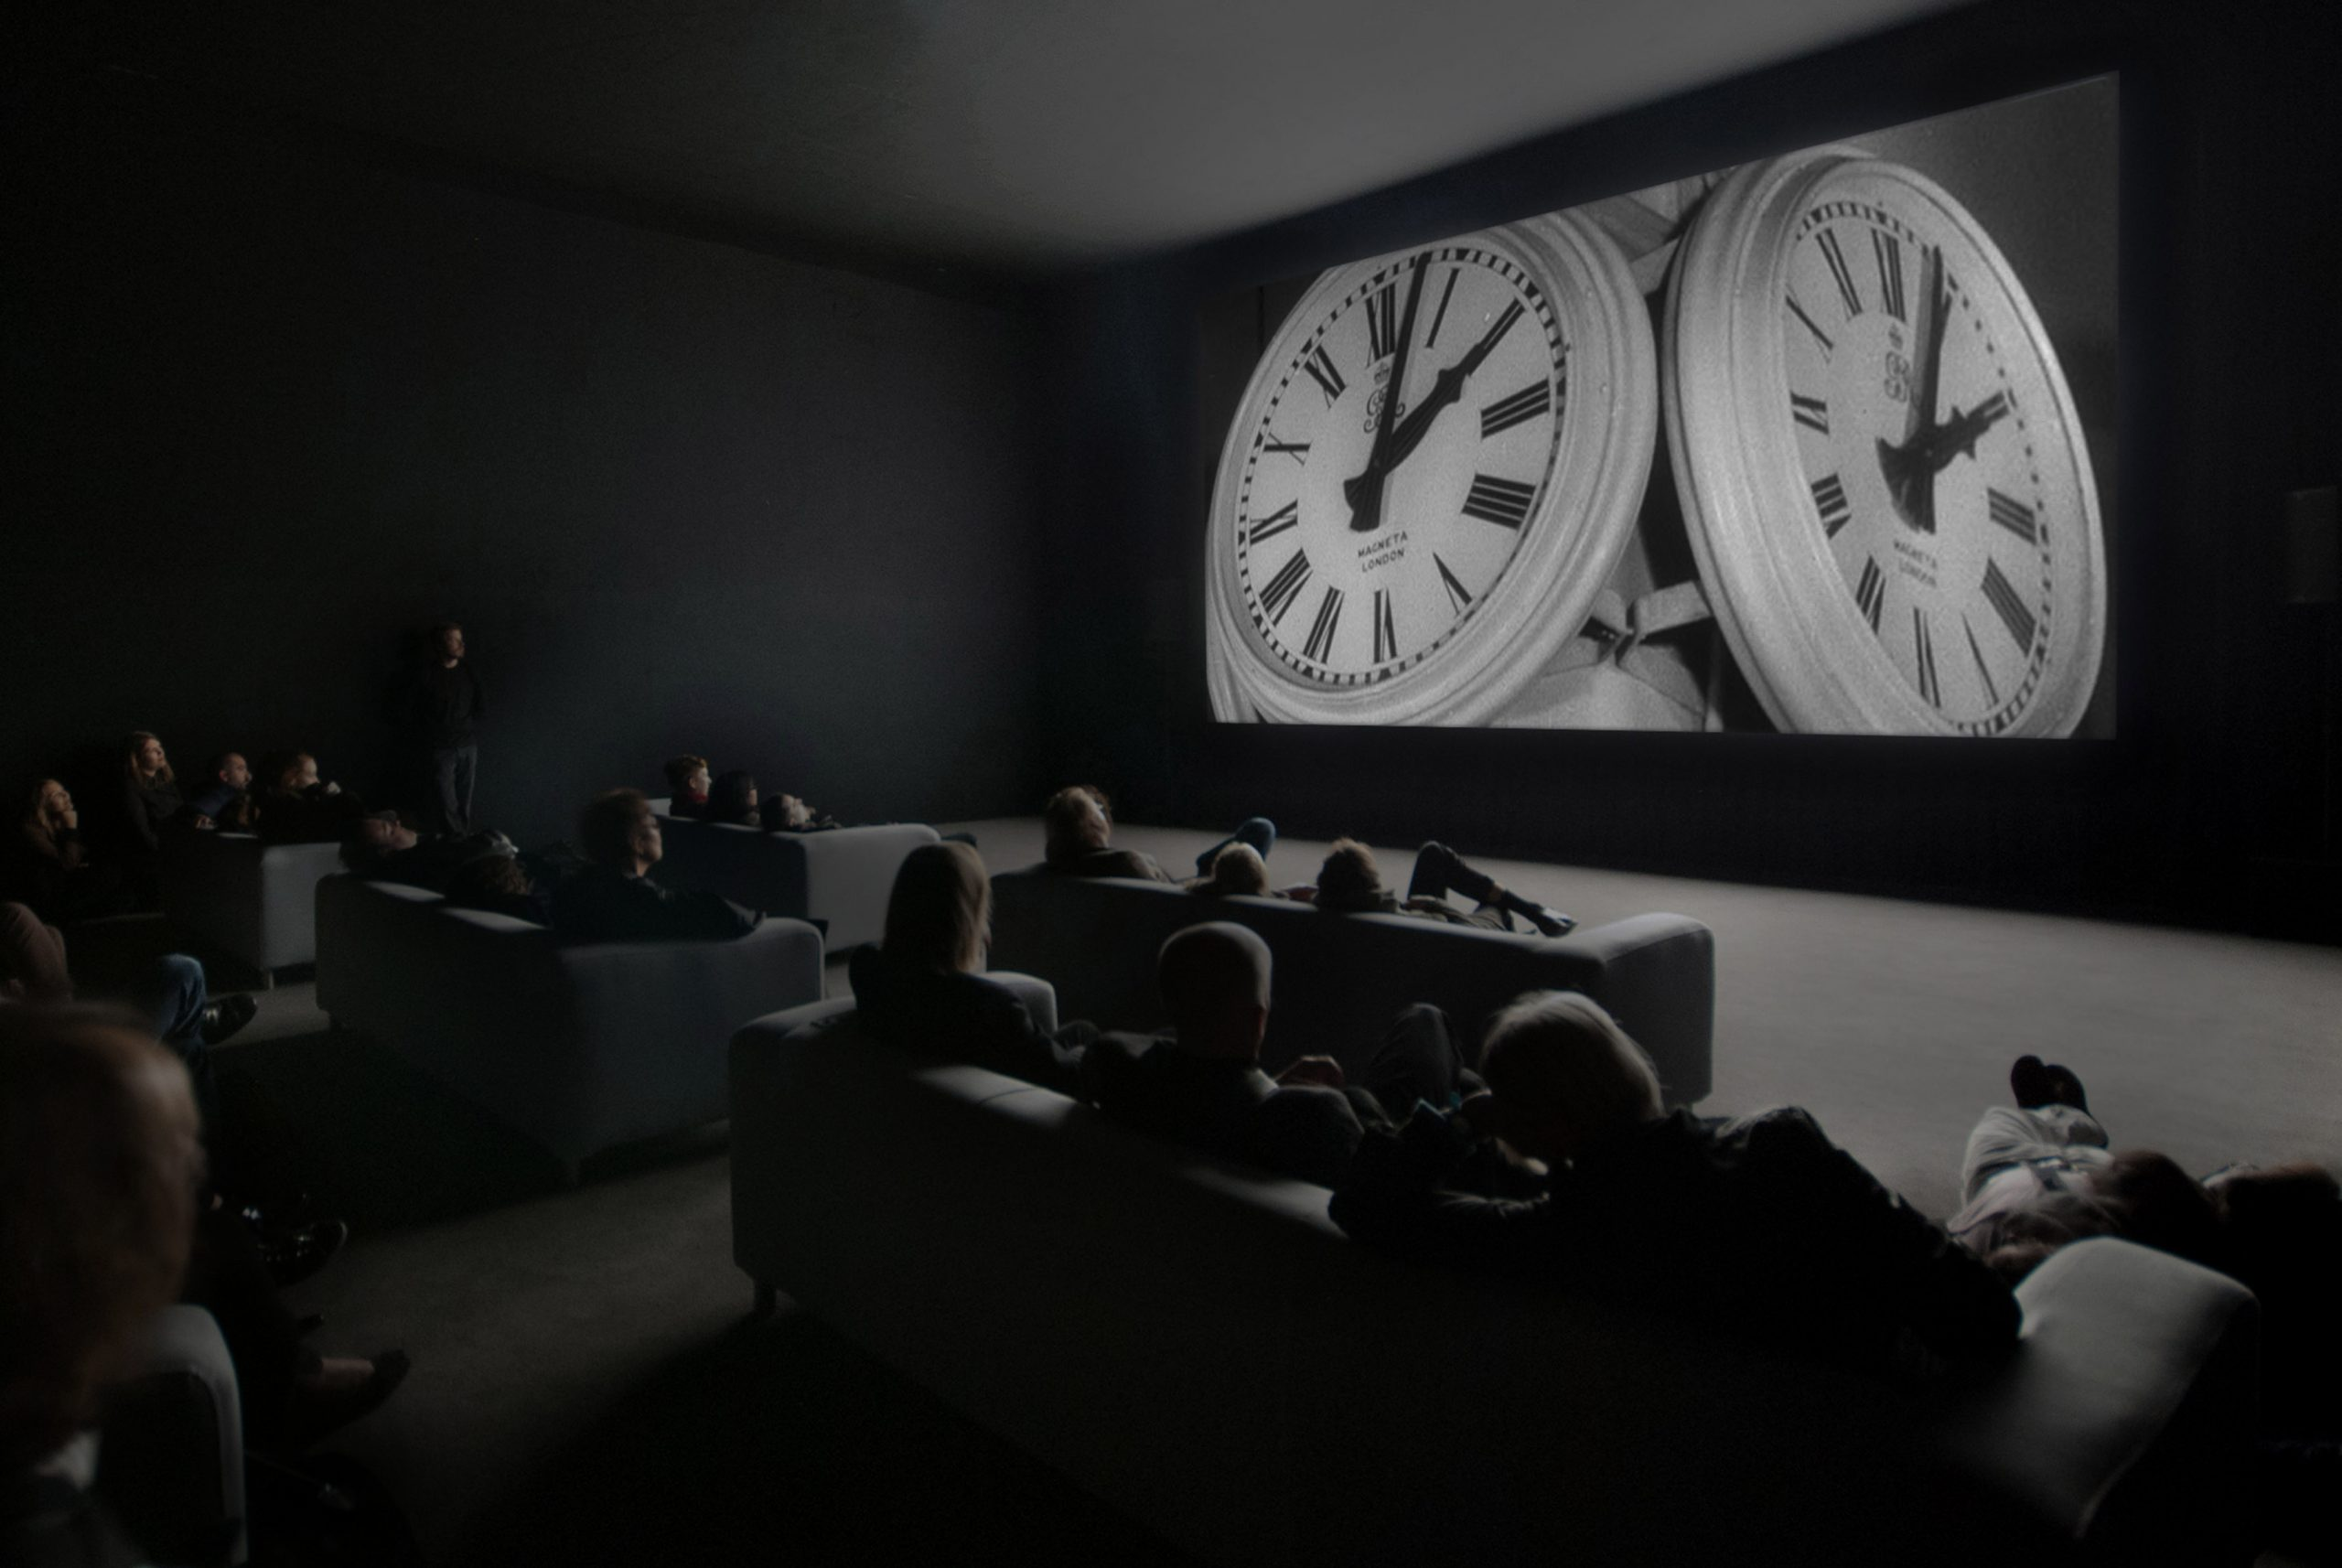 Christian Marclay, The Clock, 2010. Single-channel video installation. Duration: 24 hours © the artist. Photo © White Cube (Ben Westoby)